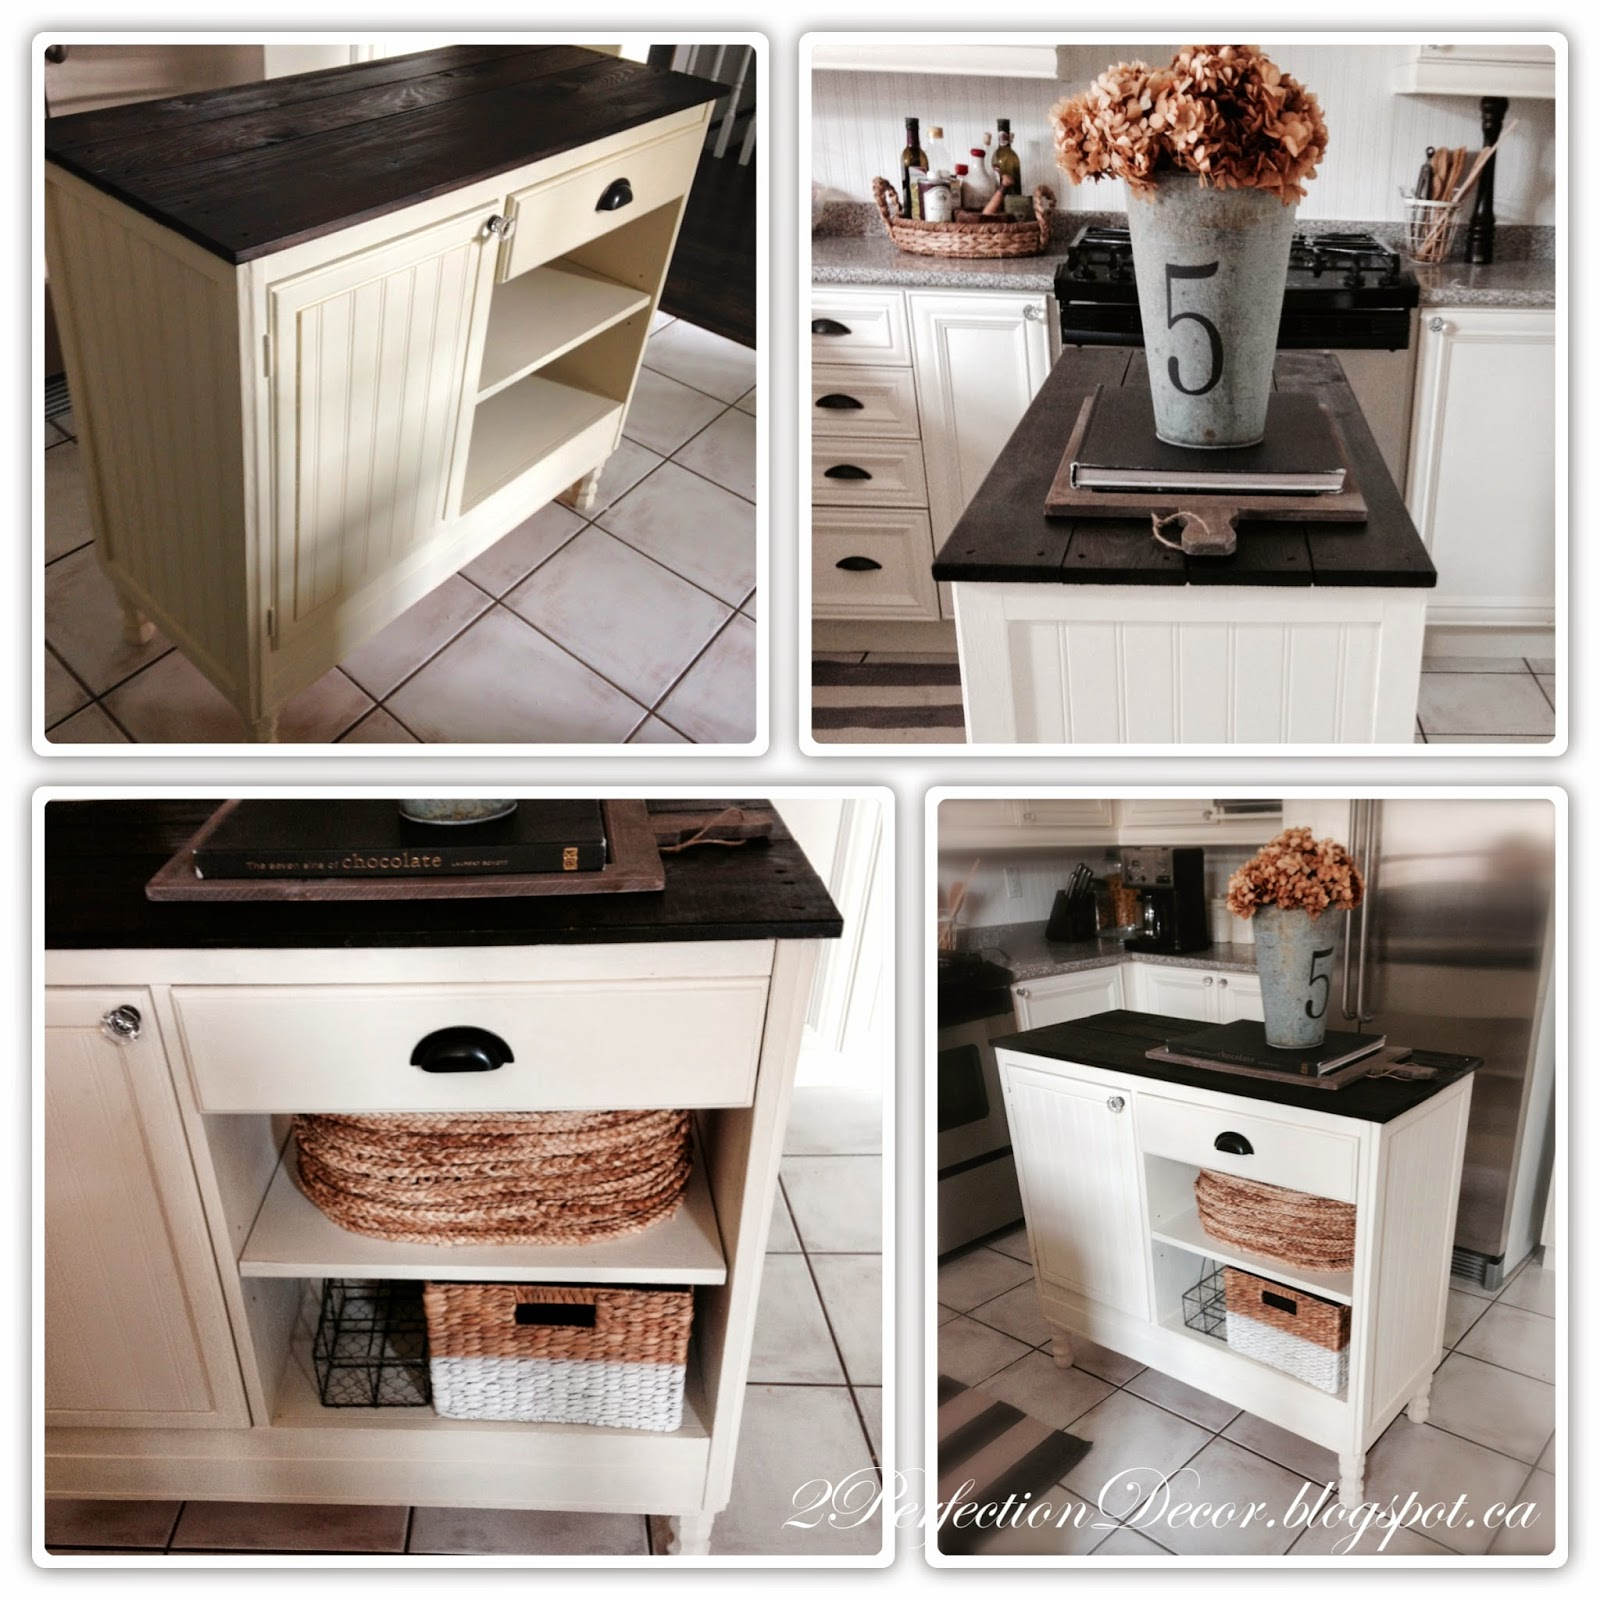 Kitchen Island Made From Old Desk: 2Perfection Decor: How To Transform A Vintage Desk/Console